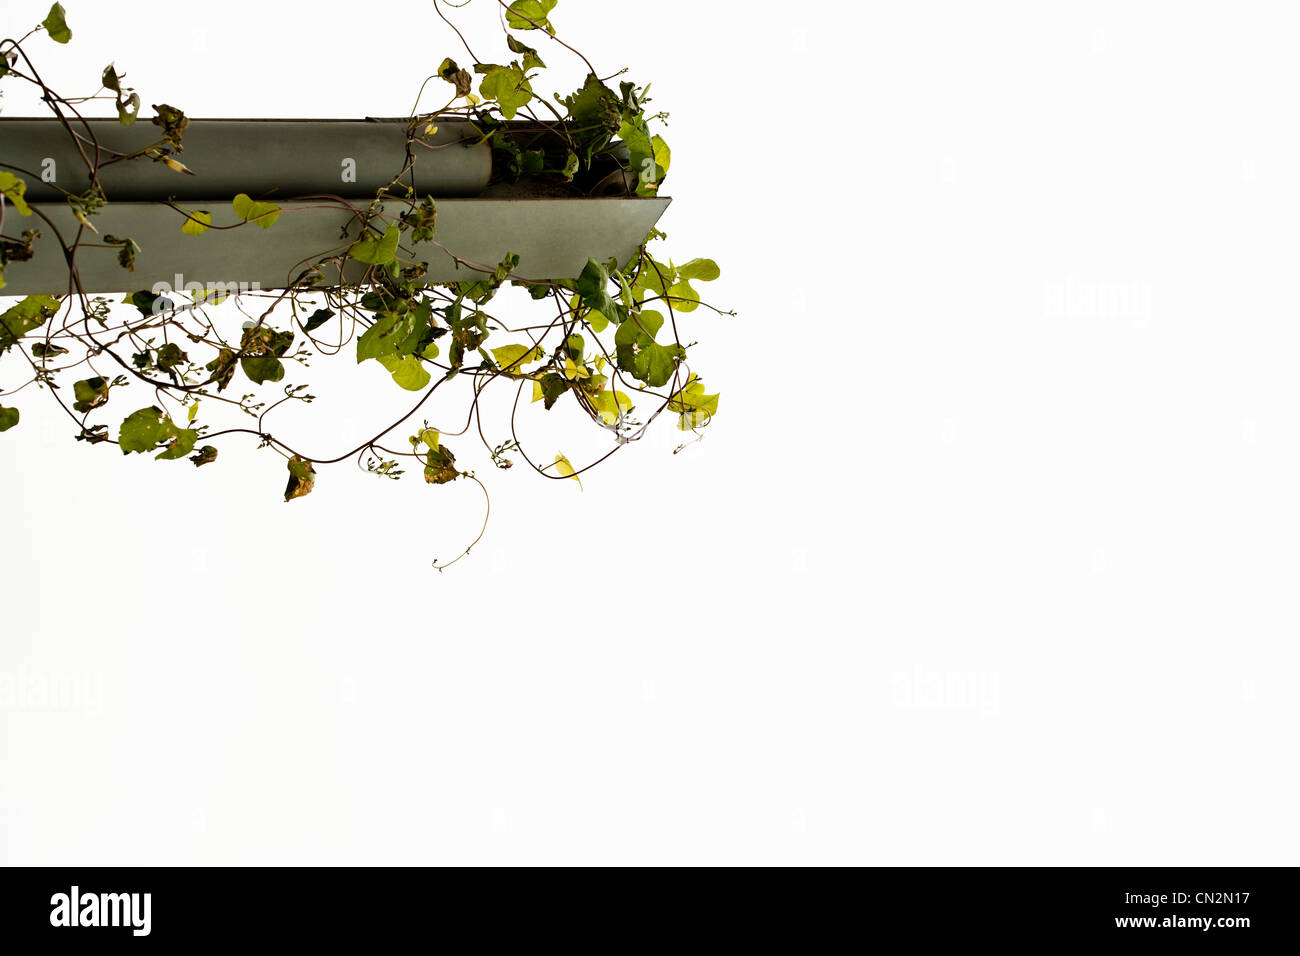 Foliage growing on structure - Stock Image